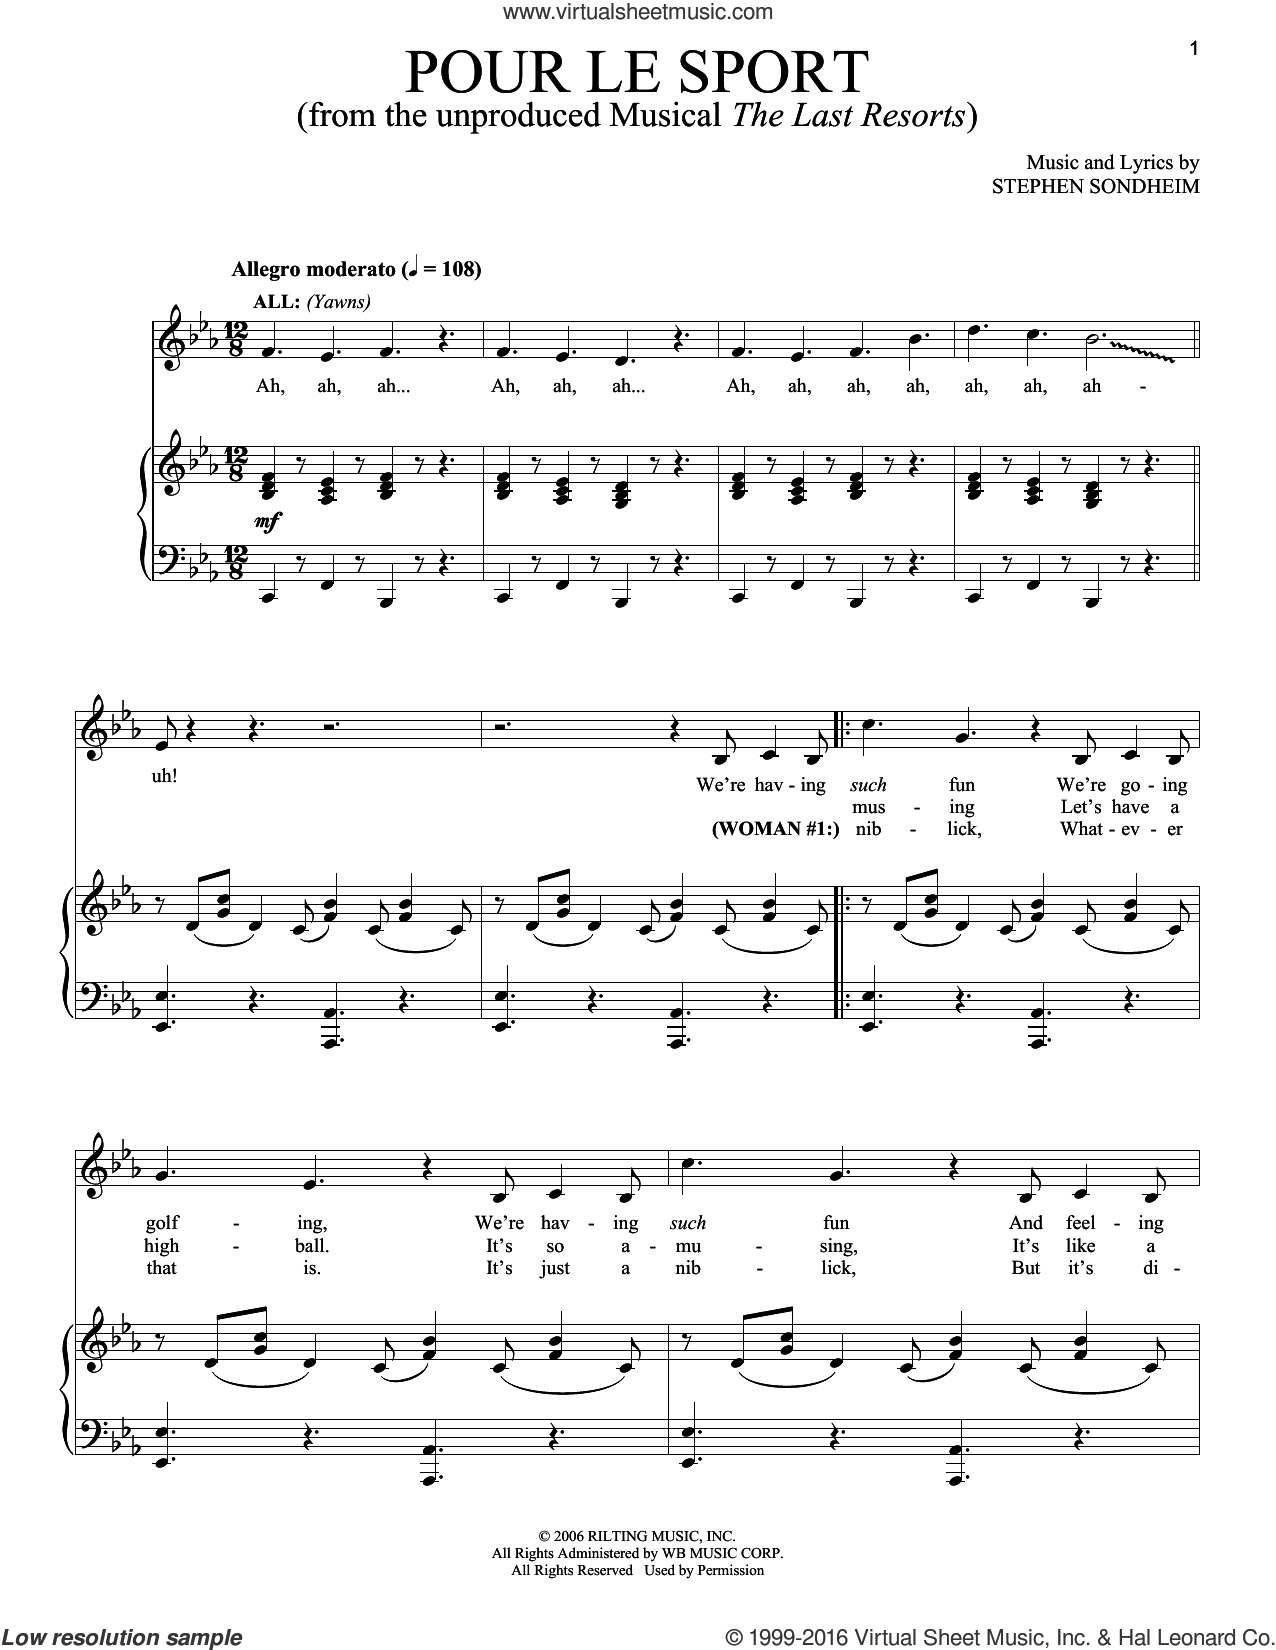 Pour Le Sport sheet music for voice and piano by Stephen Sondheim, intermediate skill level